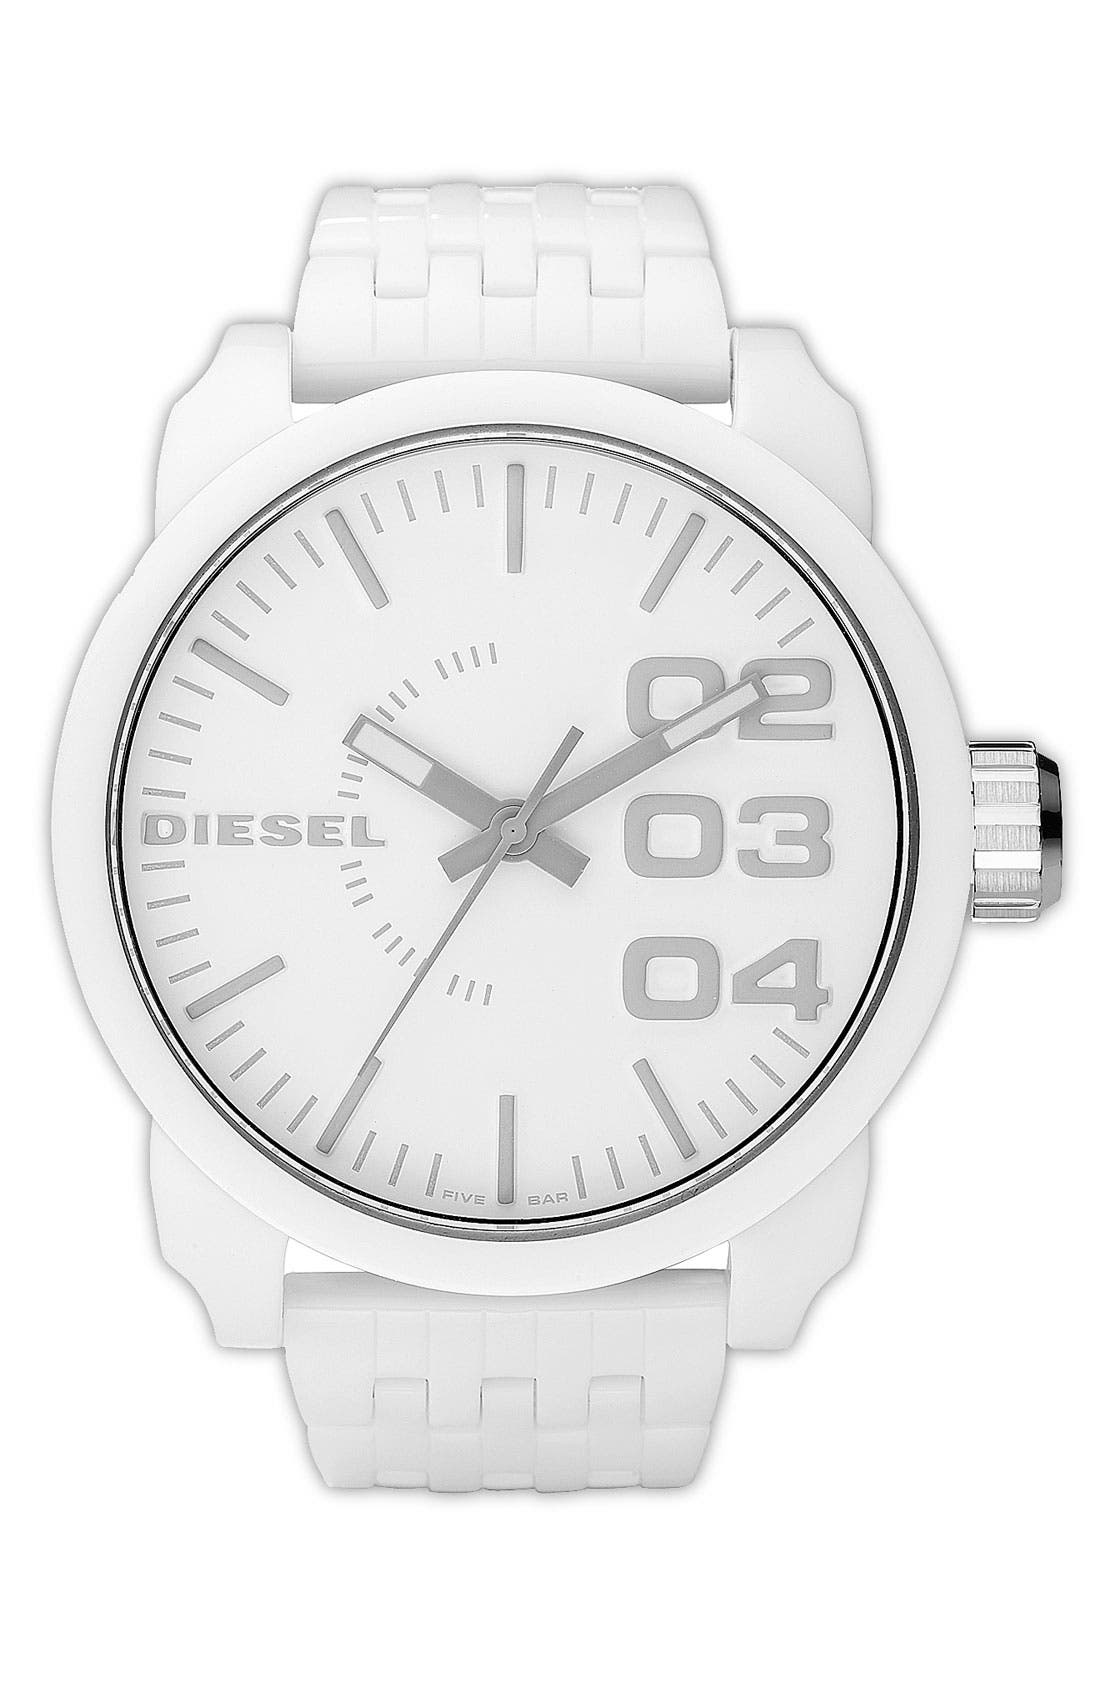 Main Image - DIESEL® 'Franchise' Oversized Round Bracelet Watch, 59mm x 67mm